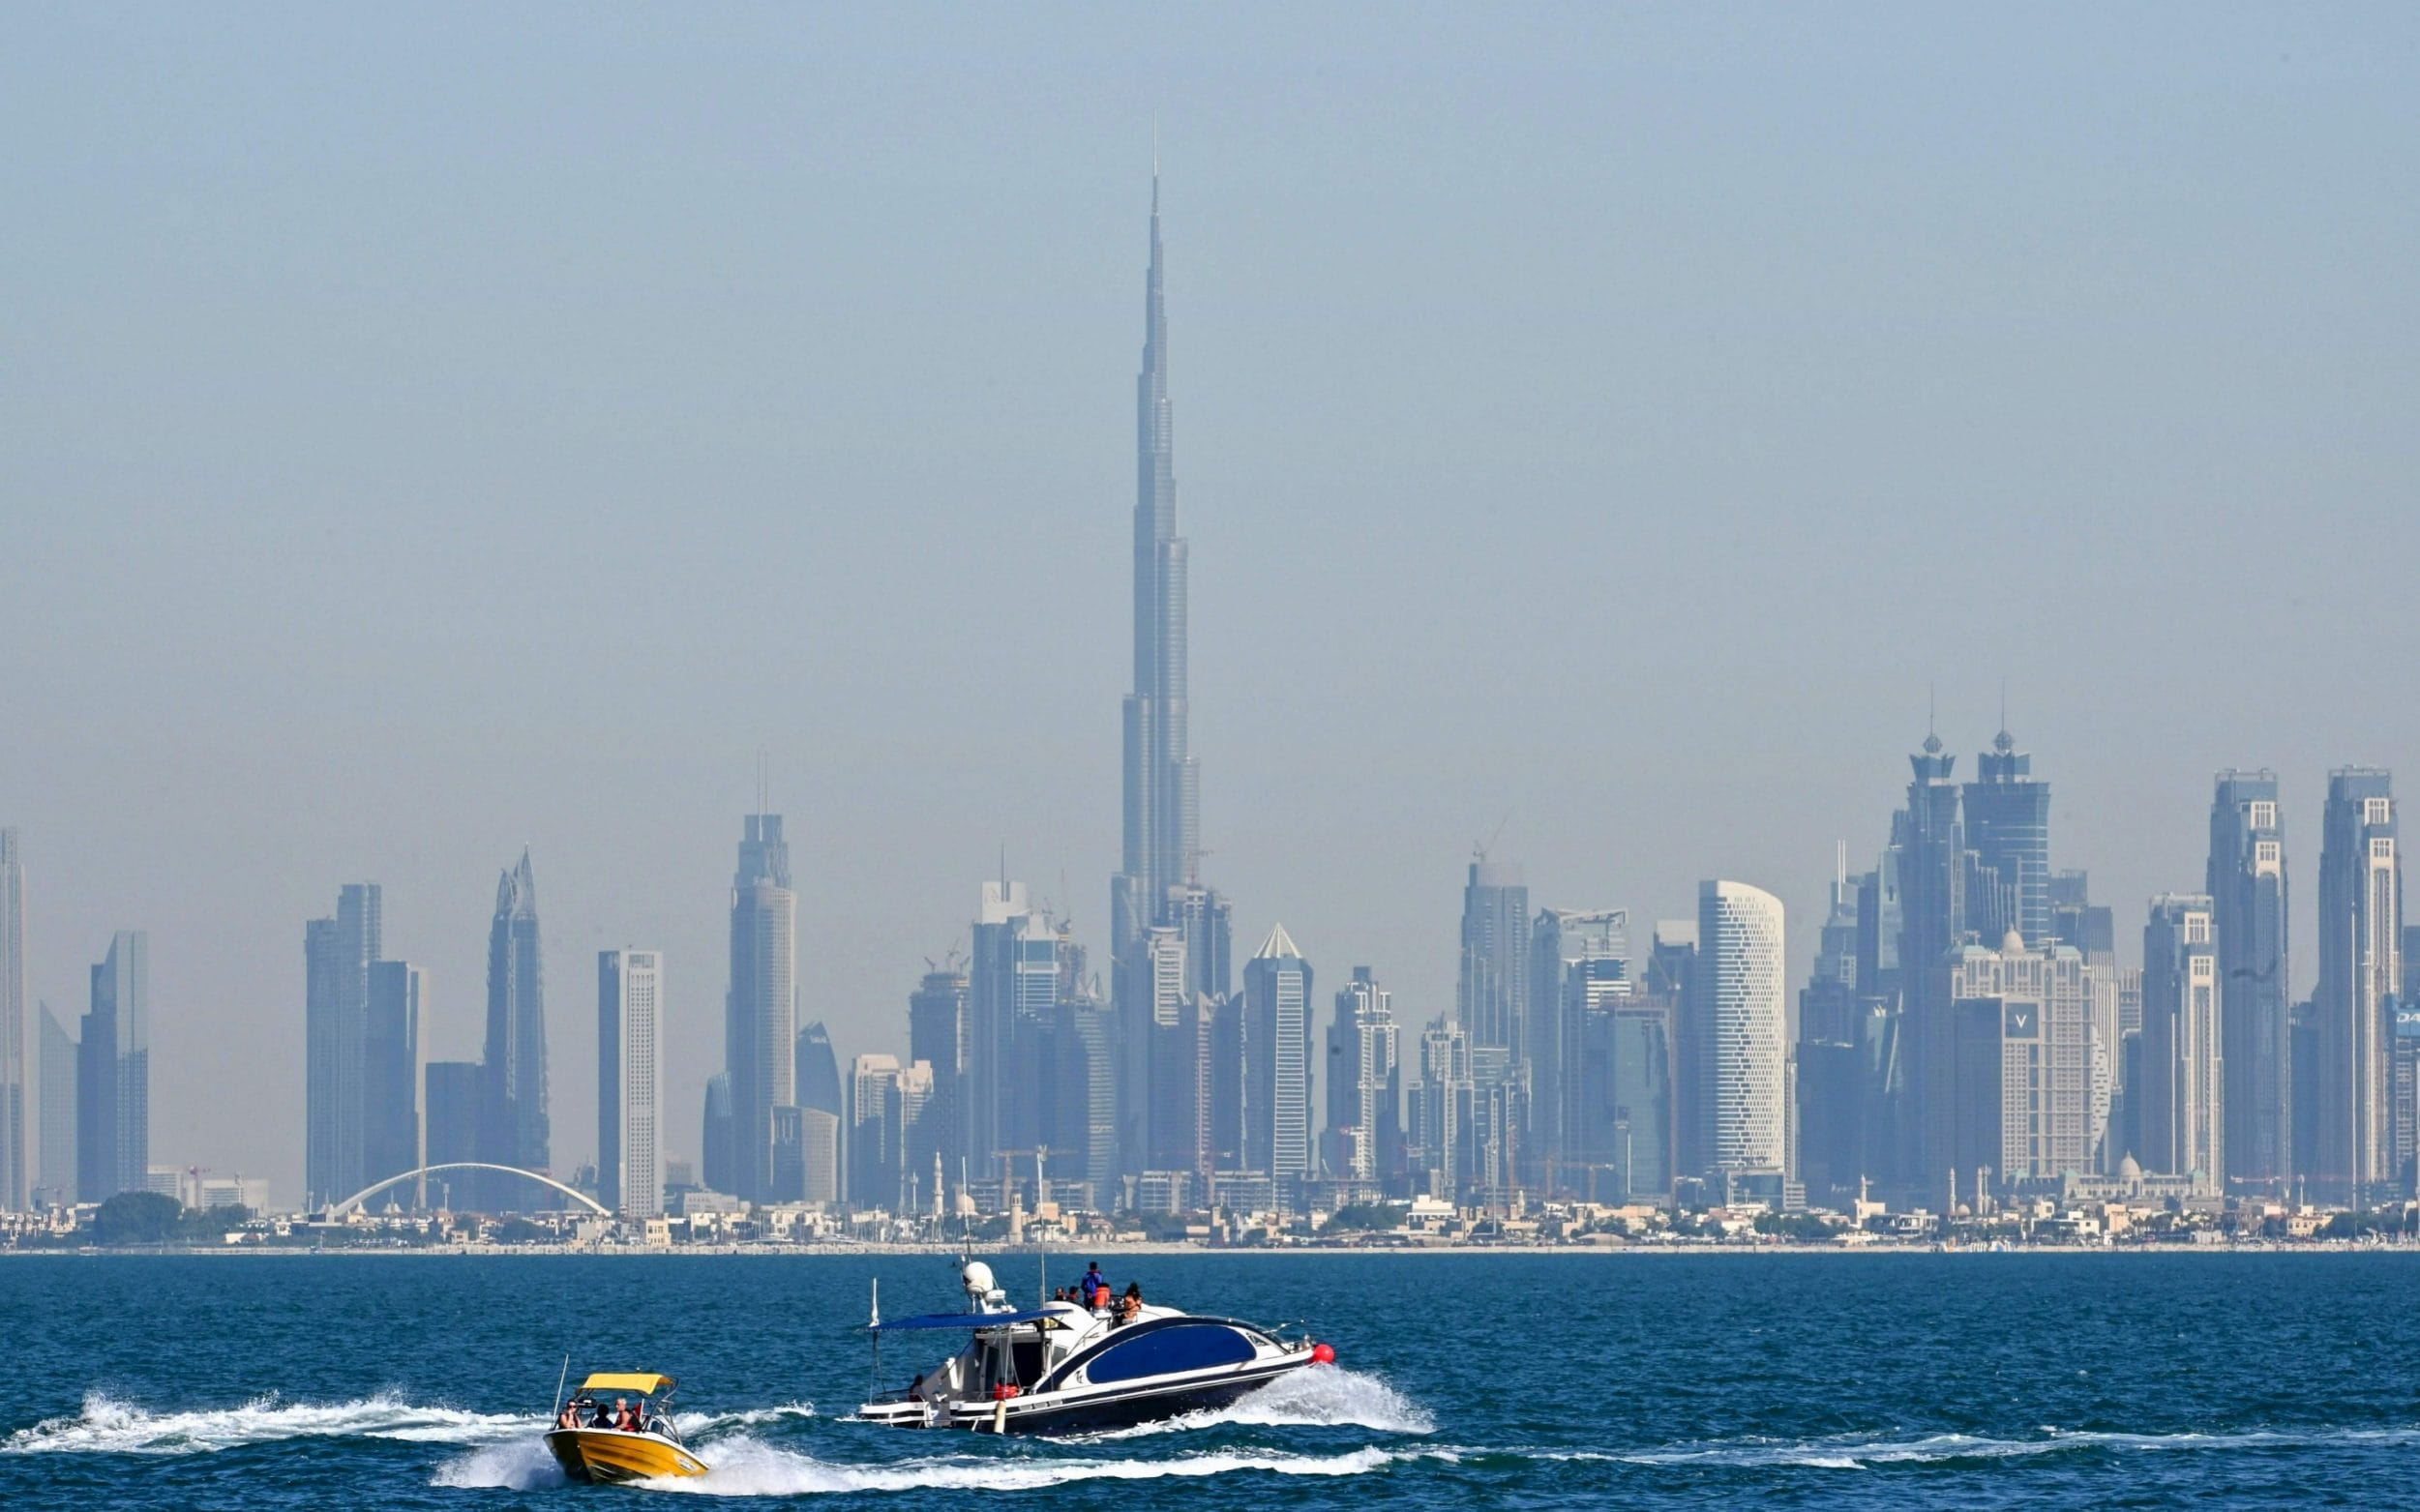 Nuclear power plant in UAE risks sparking arms race, expert warns